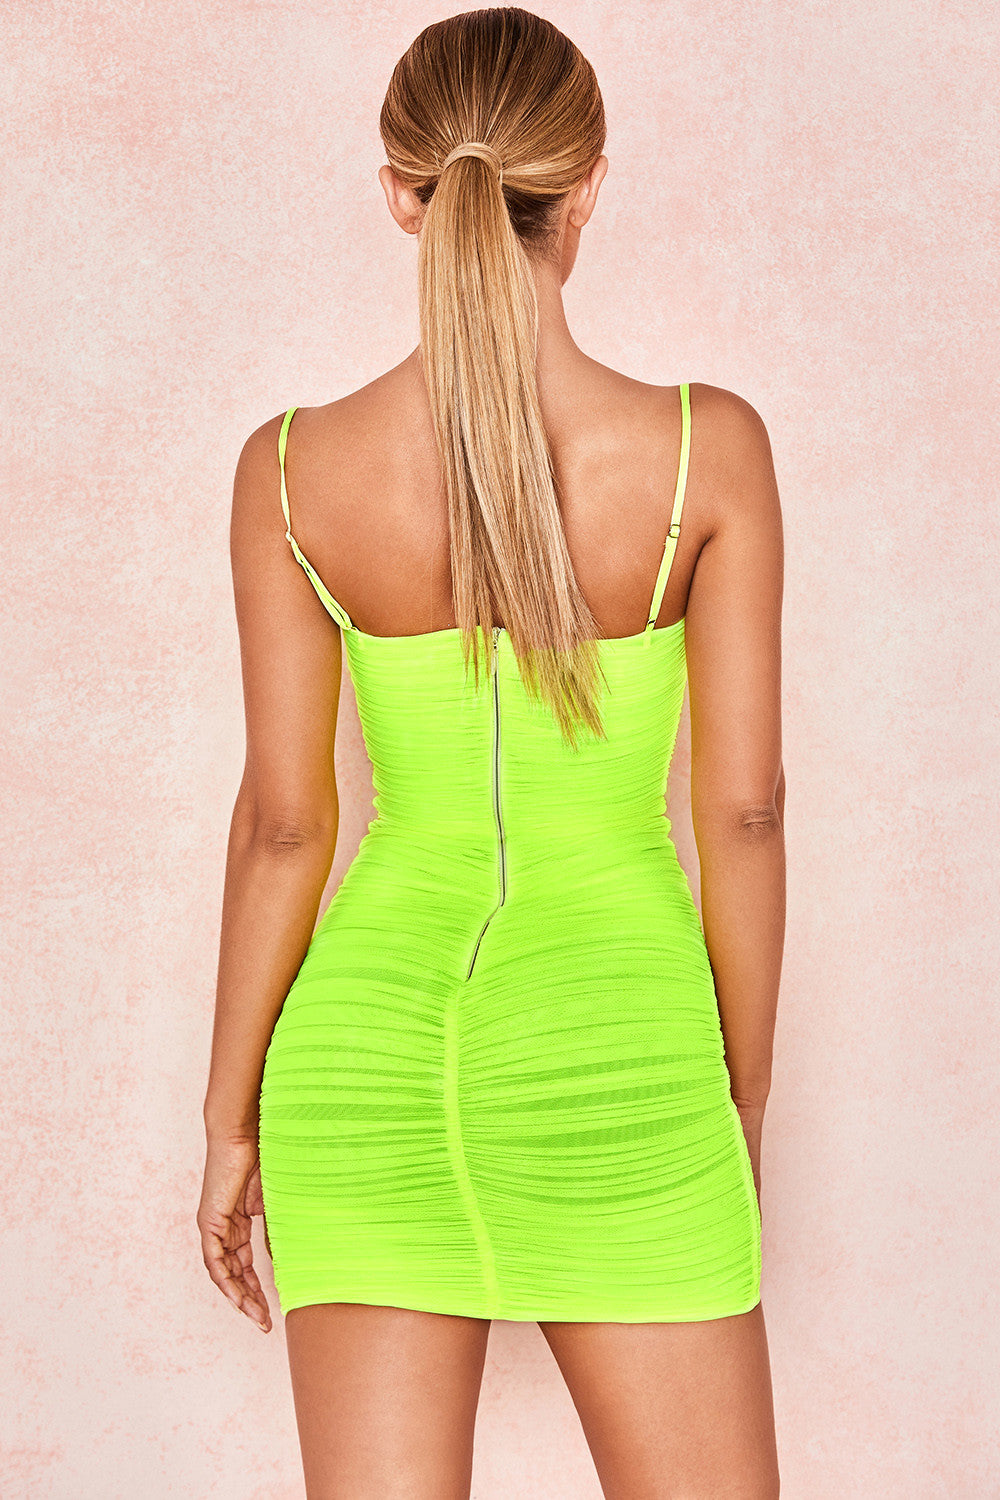 spaghetti strap neon green dress